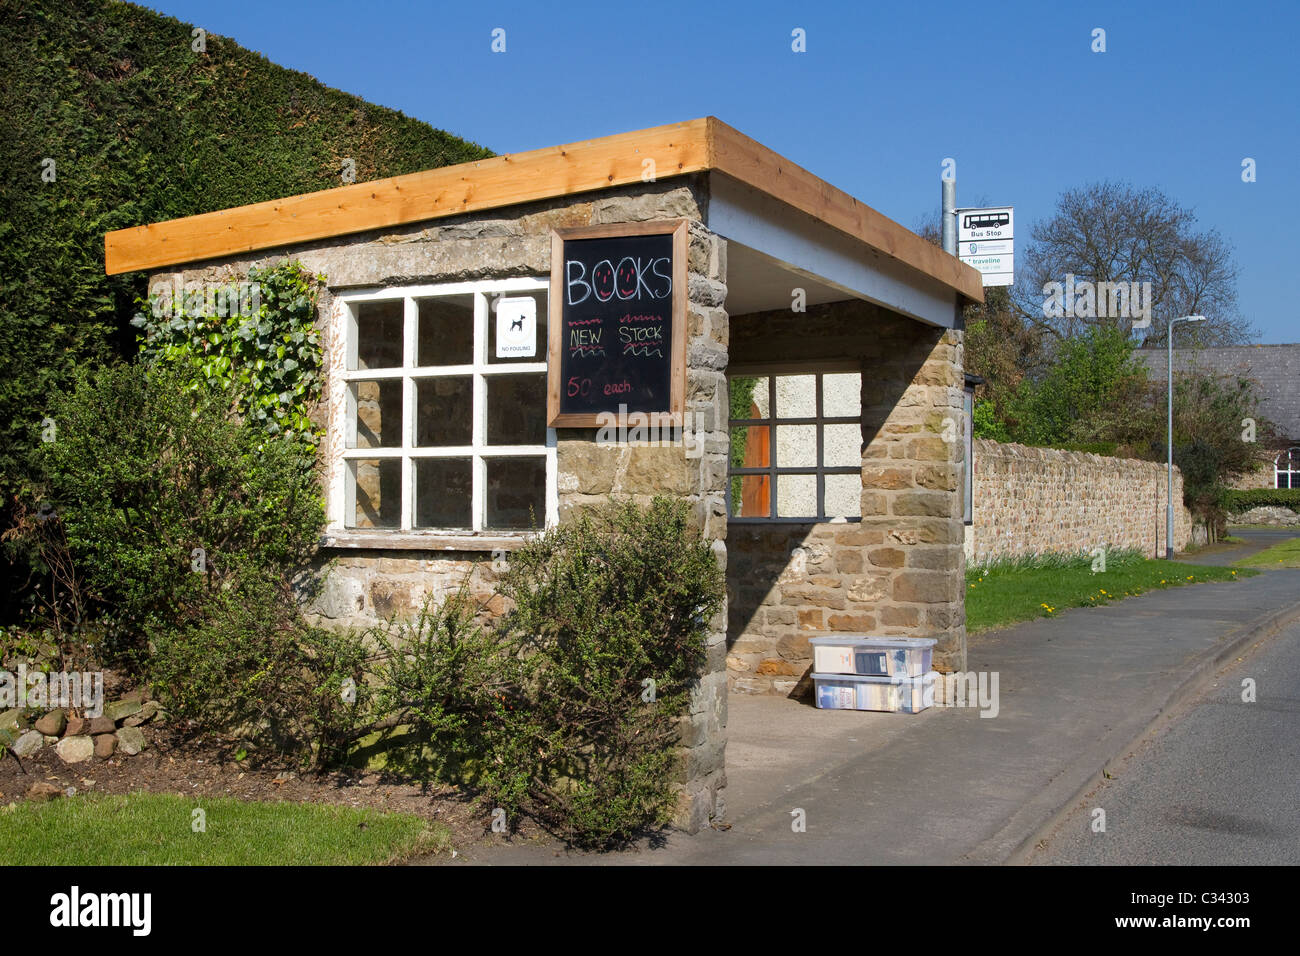 Bus shelters, bus stop, waiting shelters, Community Book Exchange _Books for Sale_Moulton, Yorkshire, UK - Stock Image